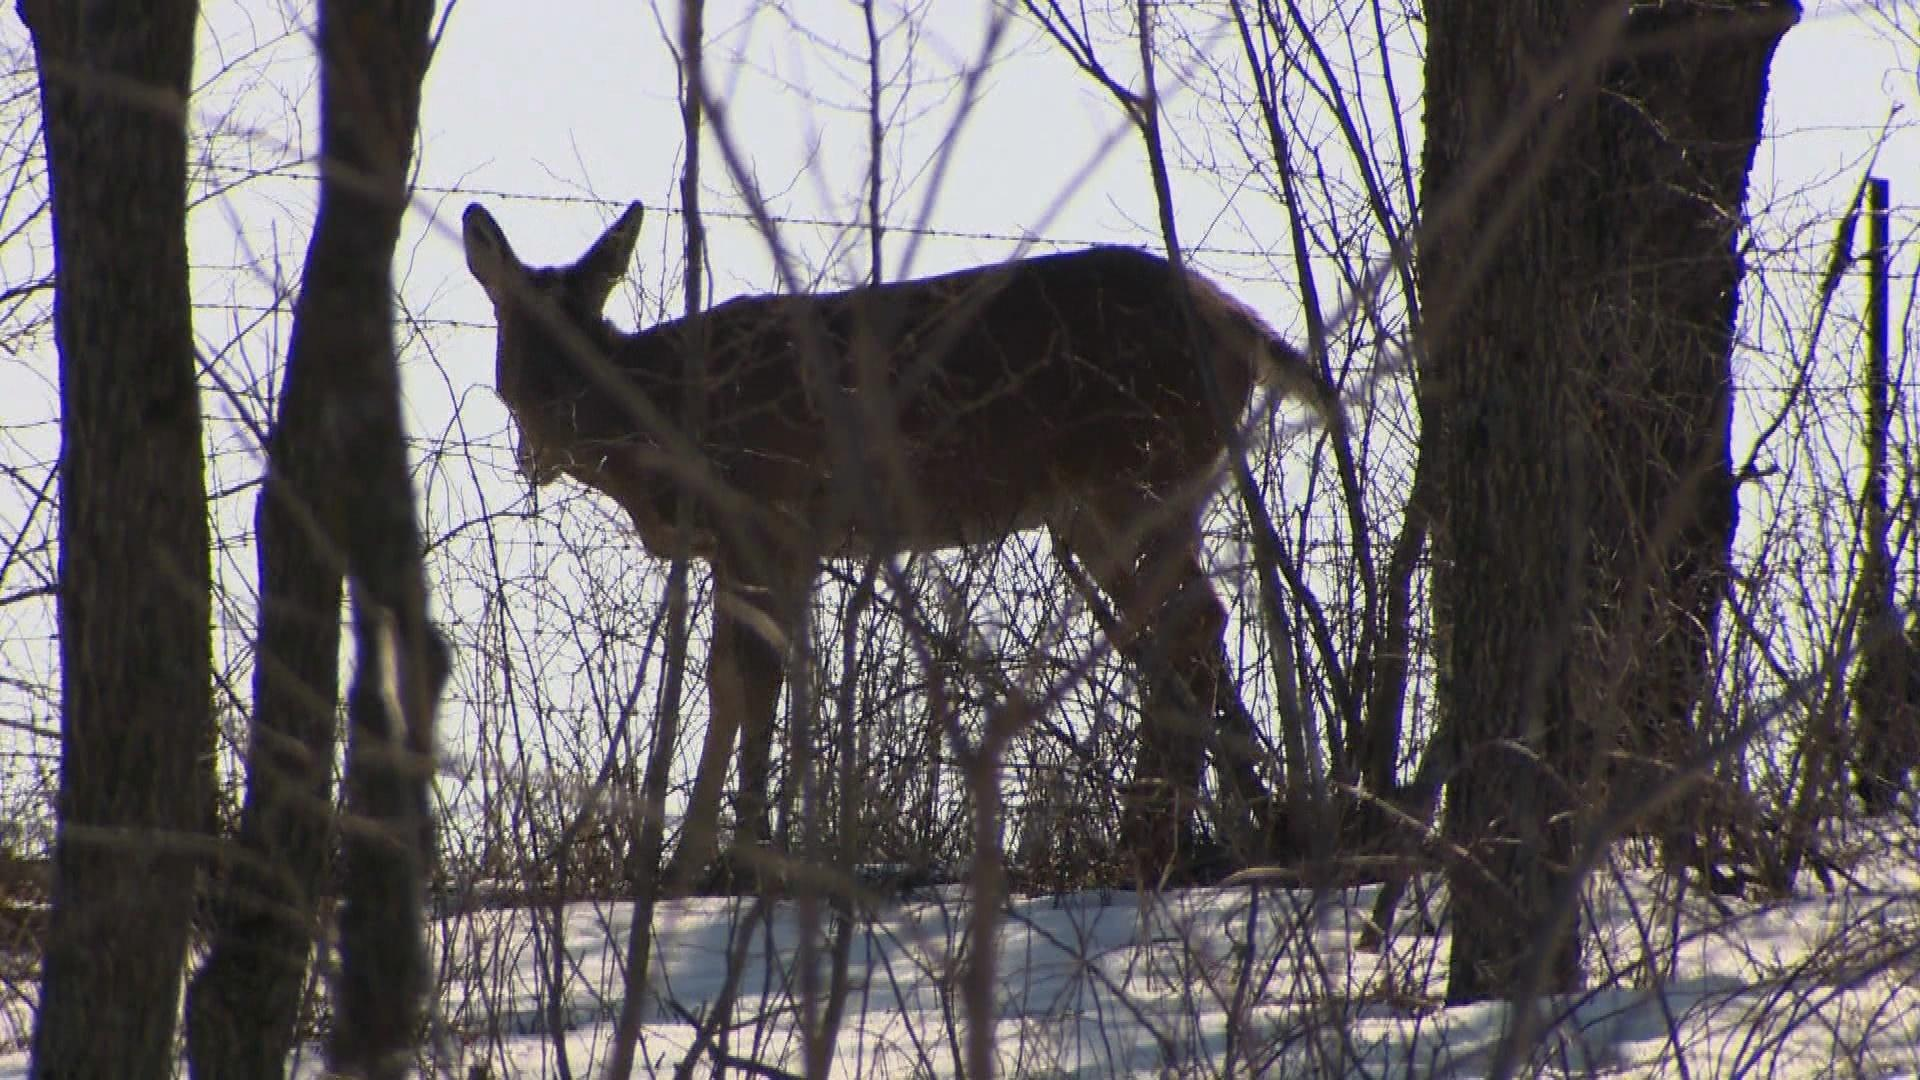 Efforts to Mandate CWD Testing in Parts of Wisconsin